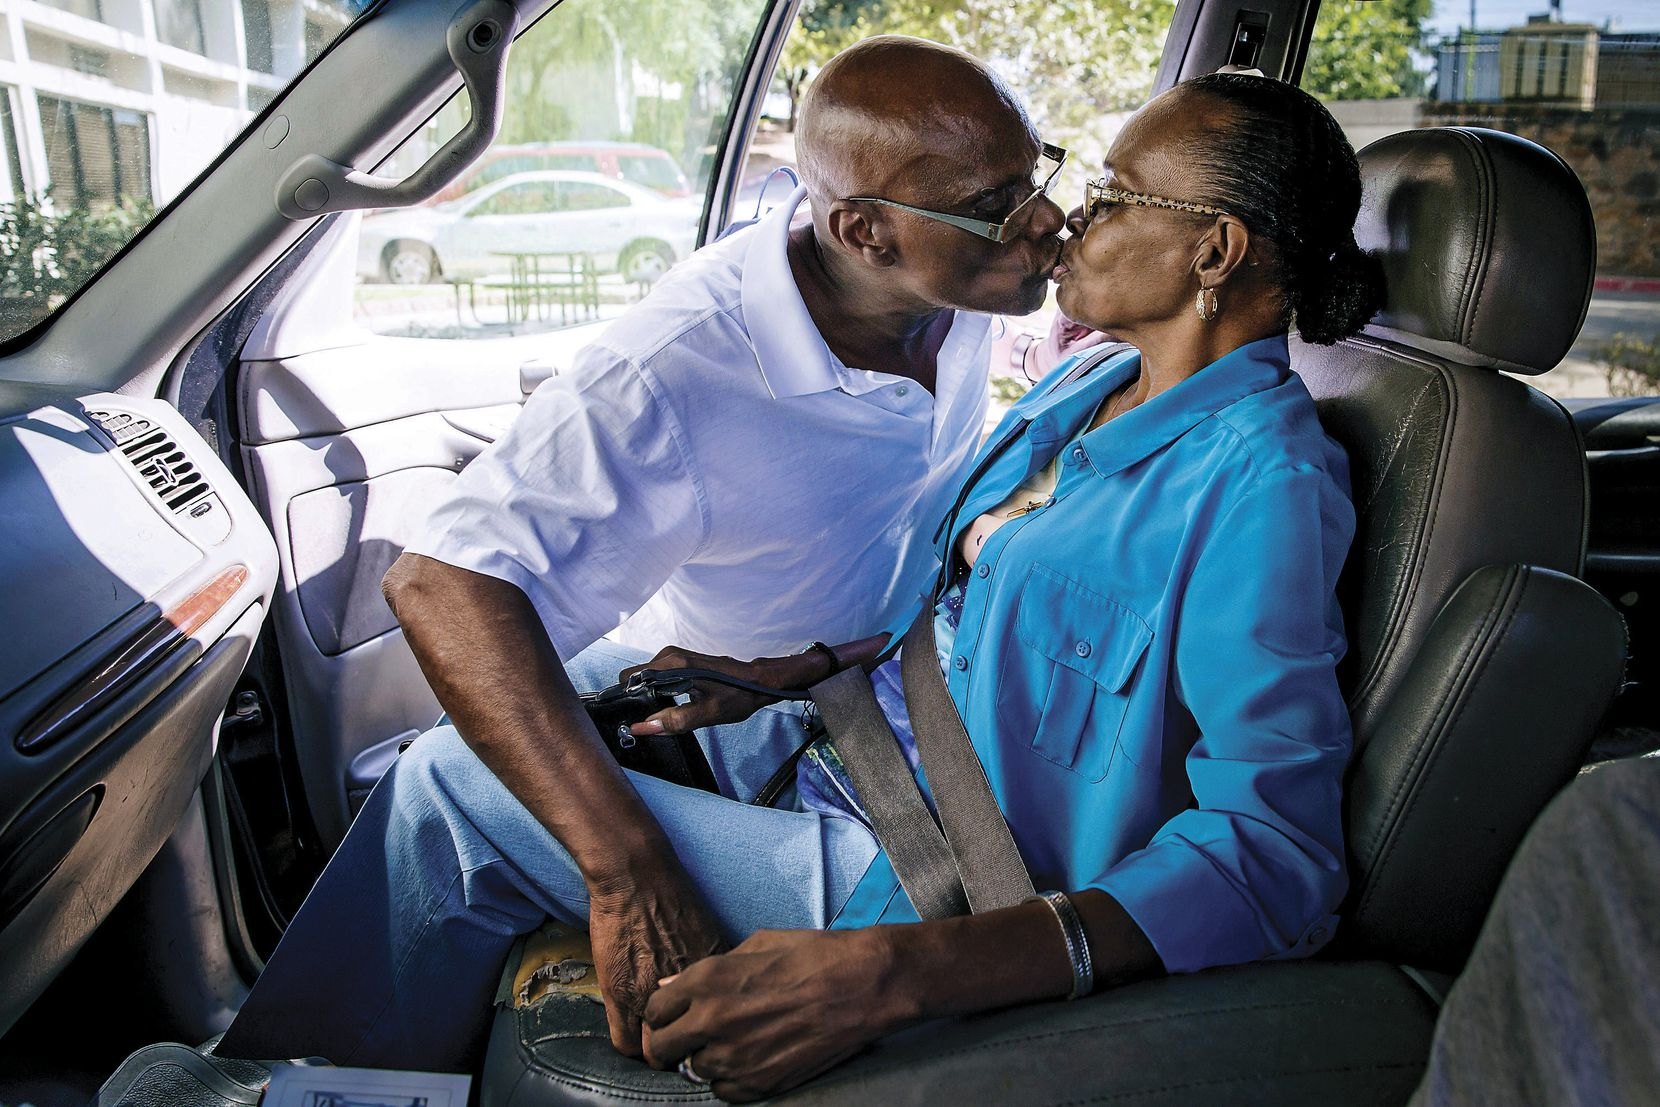 Herbert Taylor kissed his wife, Laura, goodbye as she left for a trip to a senior club on June 23. He became her caretaker after she had brain surgery because of a life-threatening aneurysm.